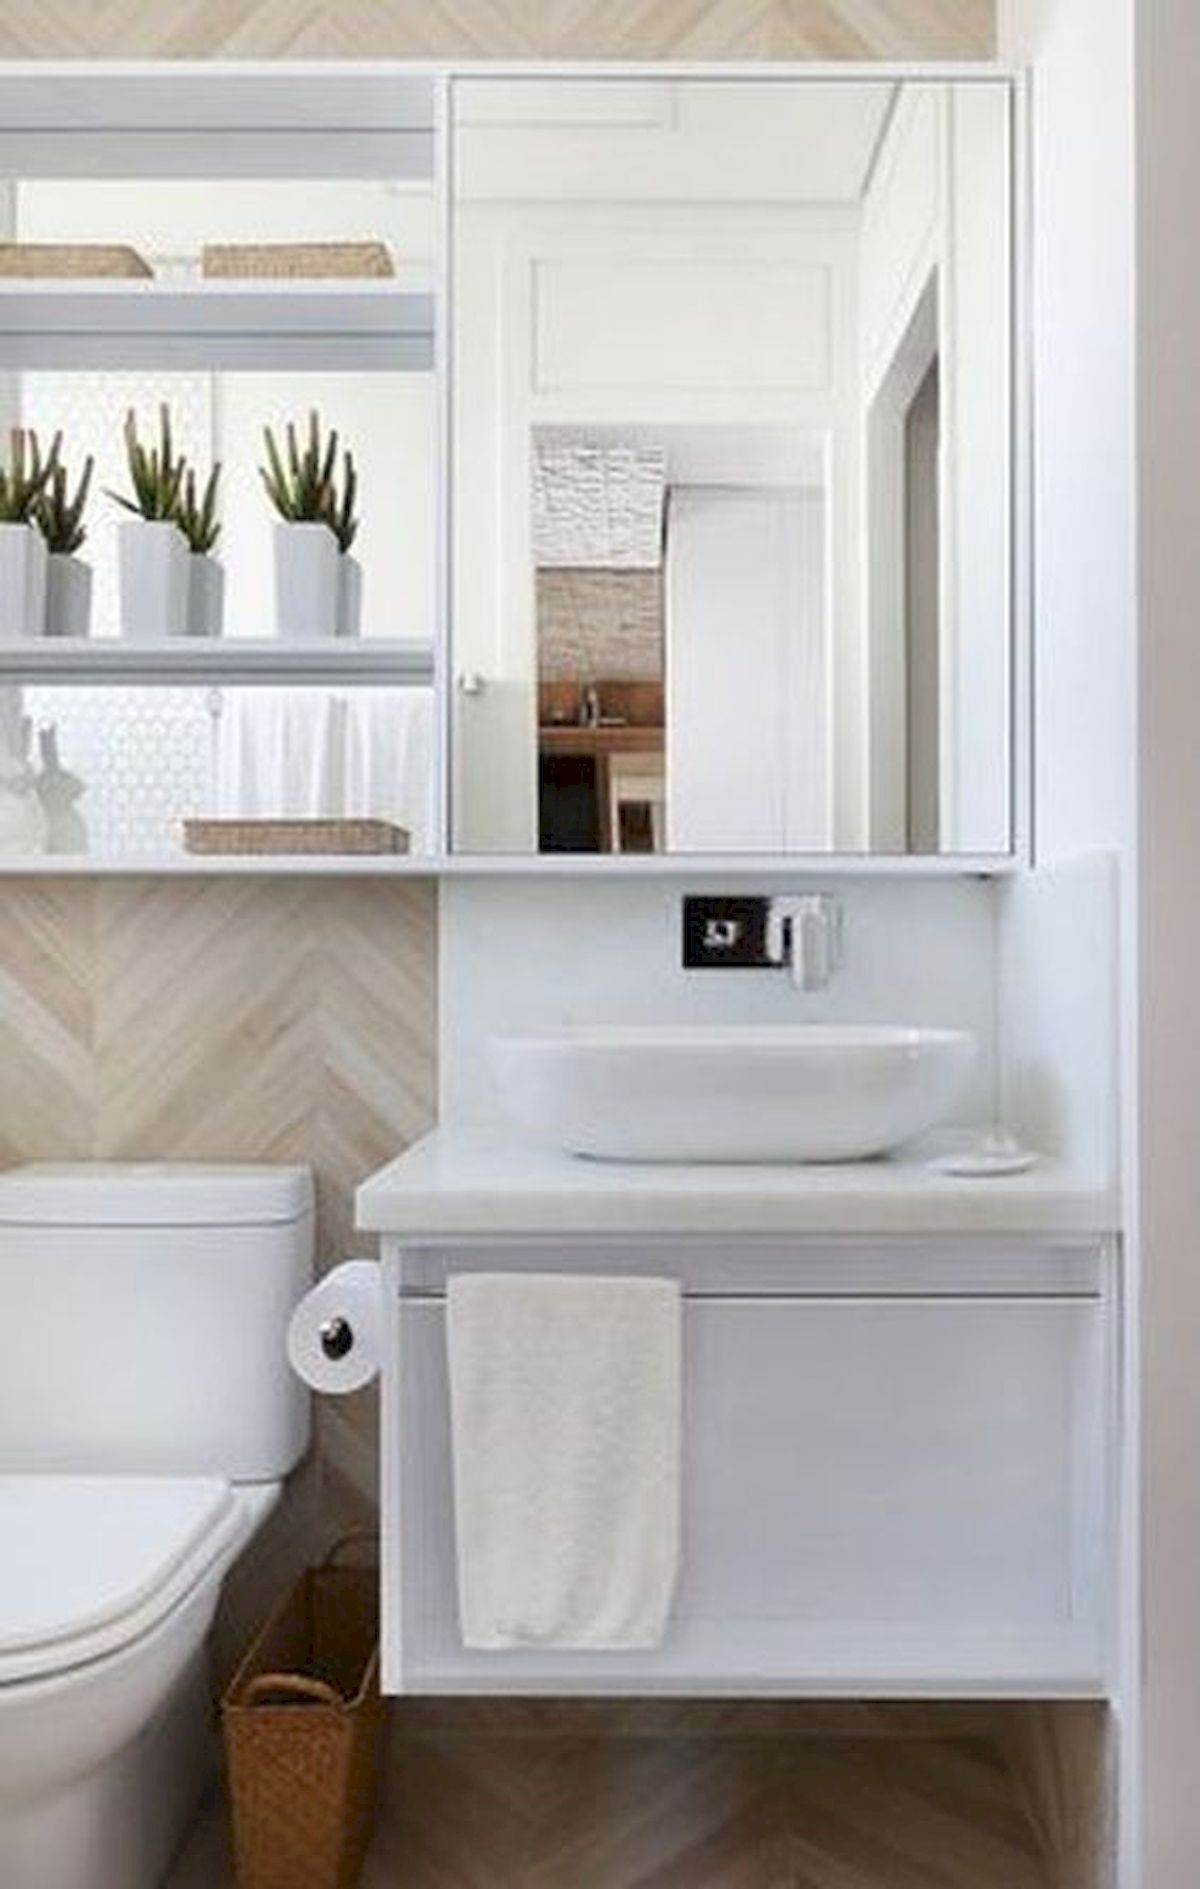 50 Best DIY Storage Design Ideas to Maximize Your Small Bathroom Space (46)